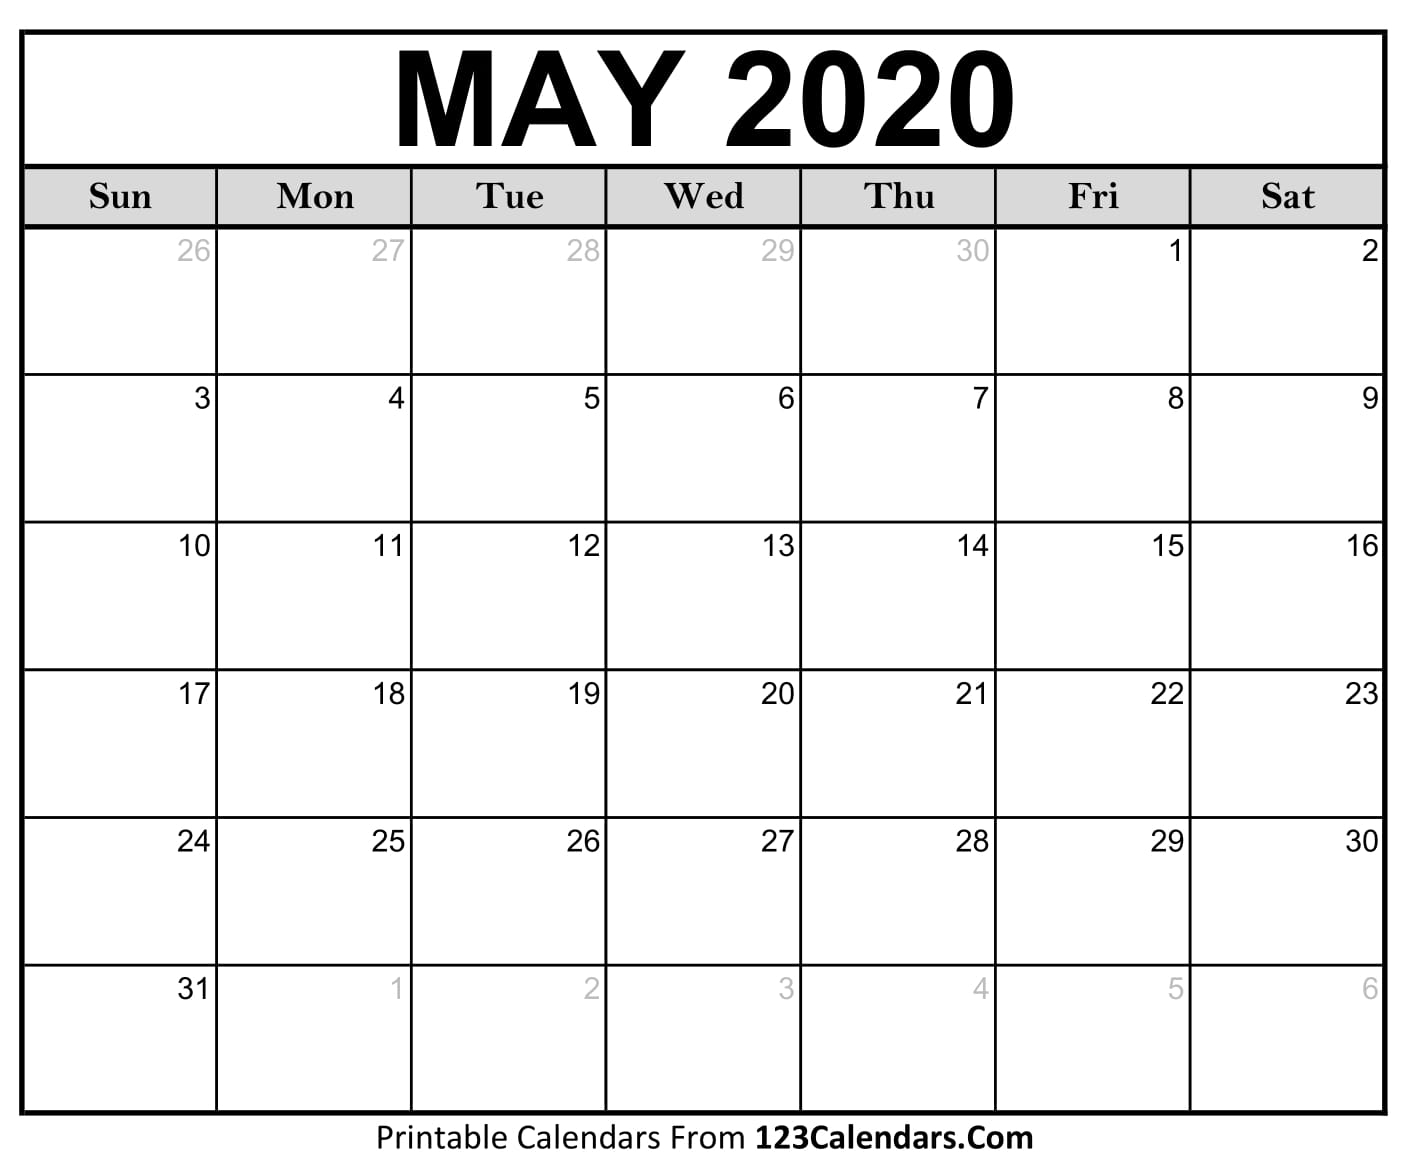 May 2020 Printable Calendar | 123Calendars within 2020 Calendar Time And Date